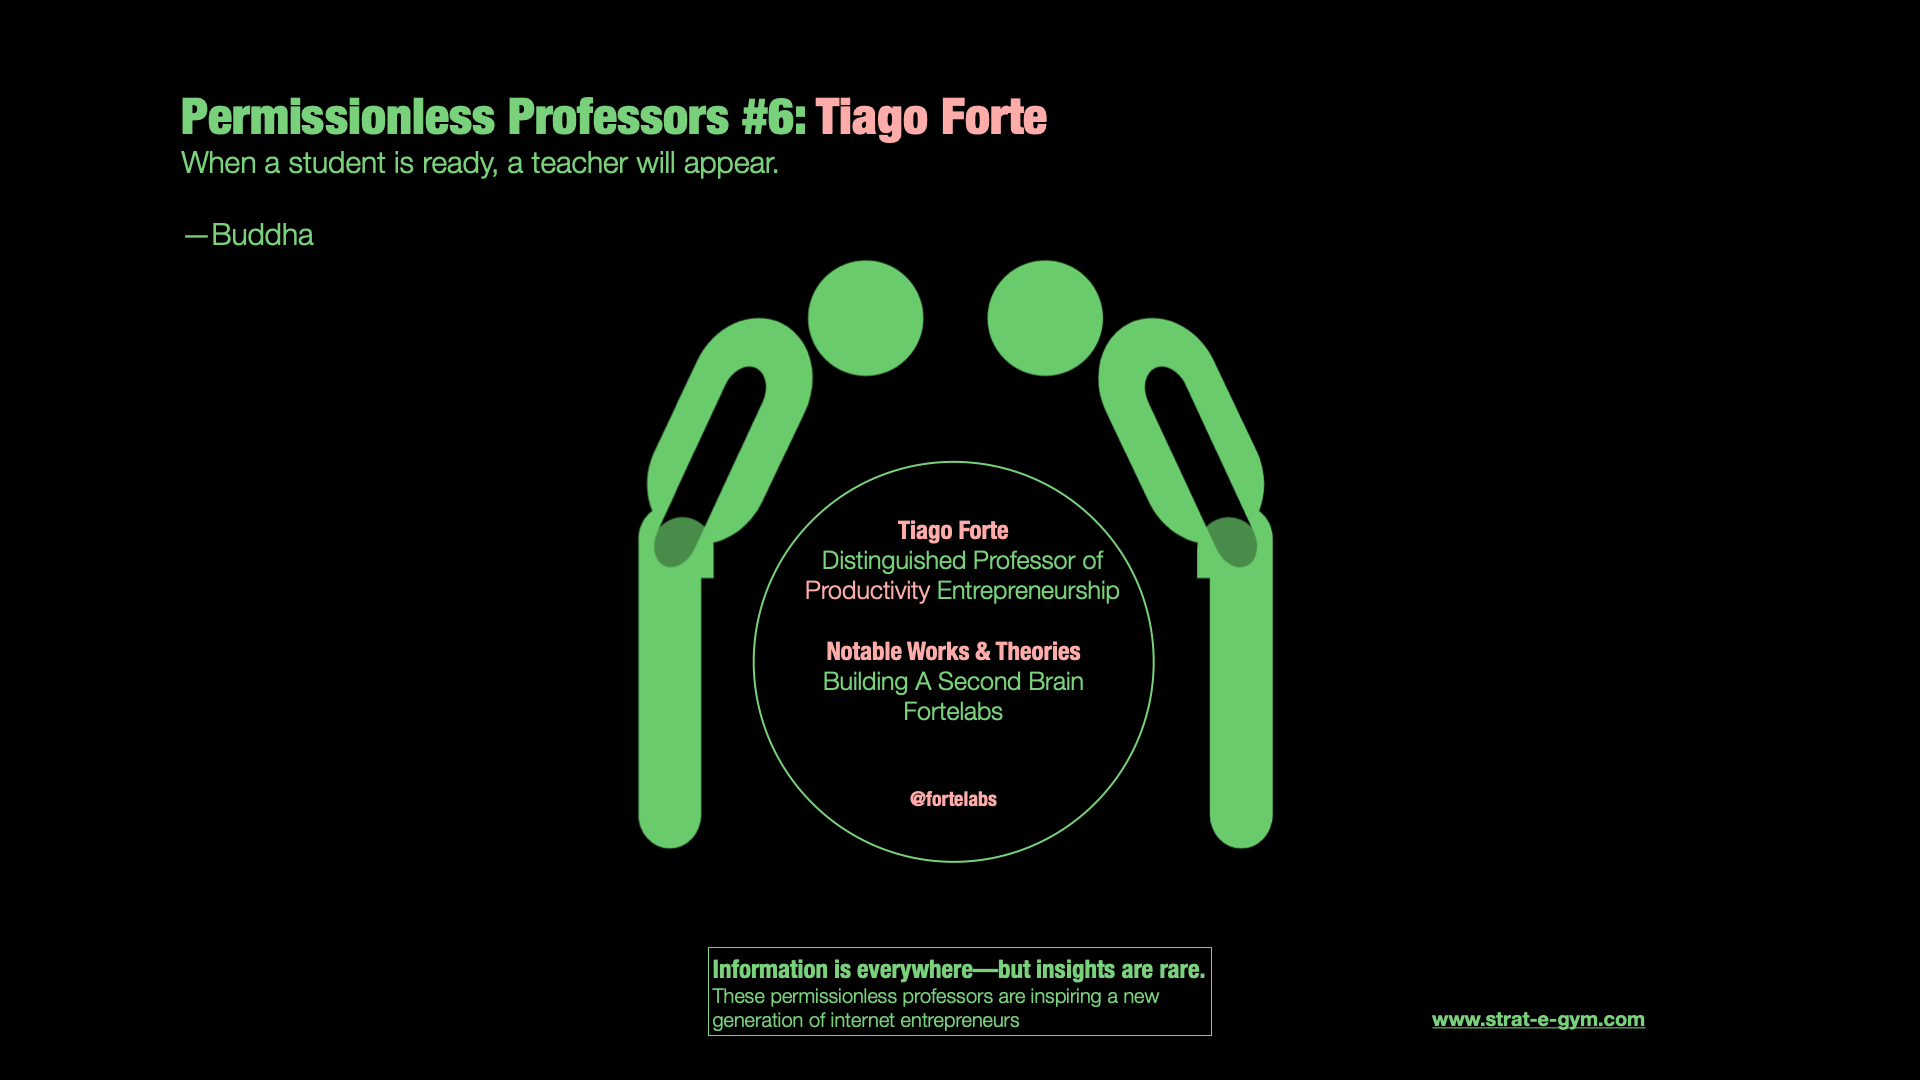 Permissionless Professors #6: Tiago Forte